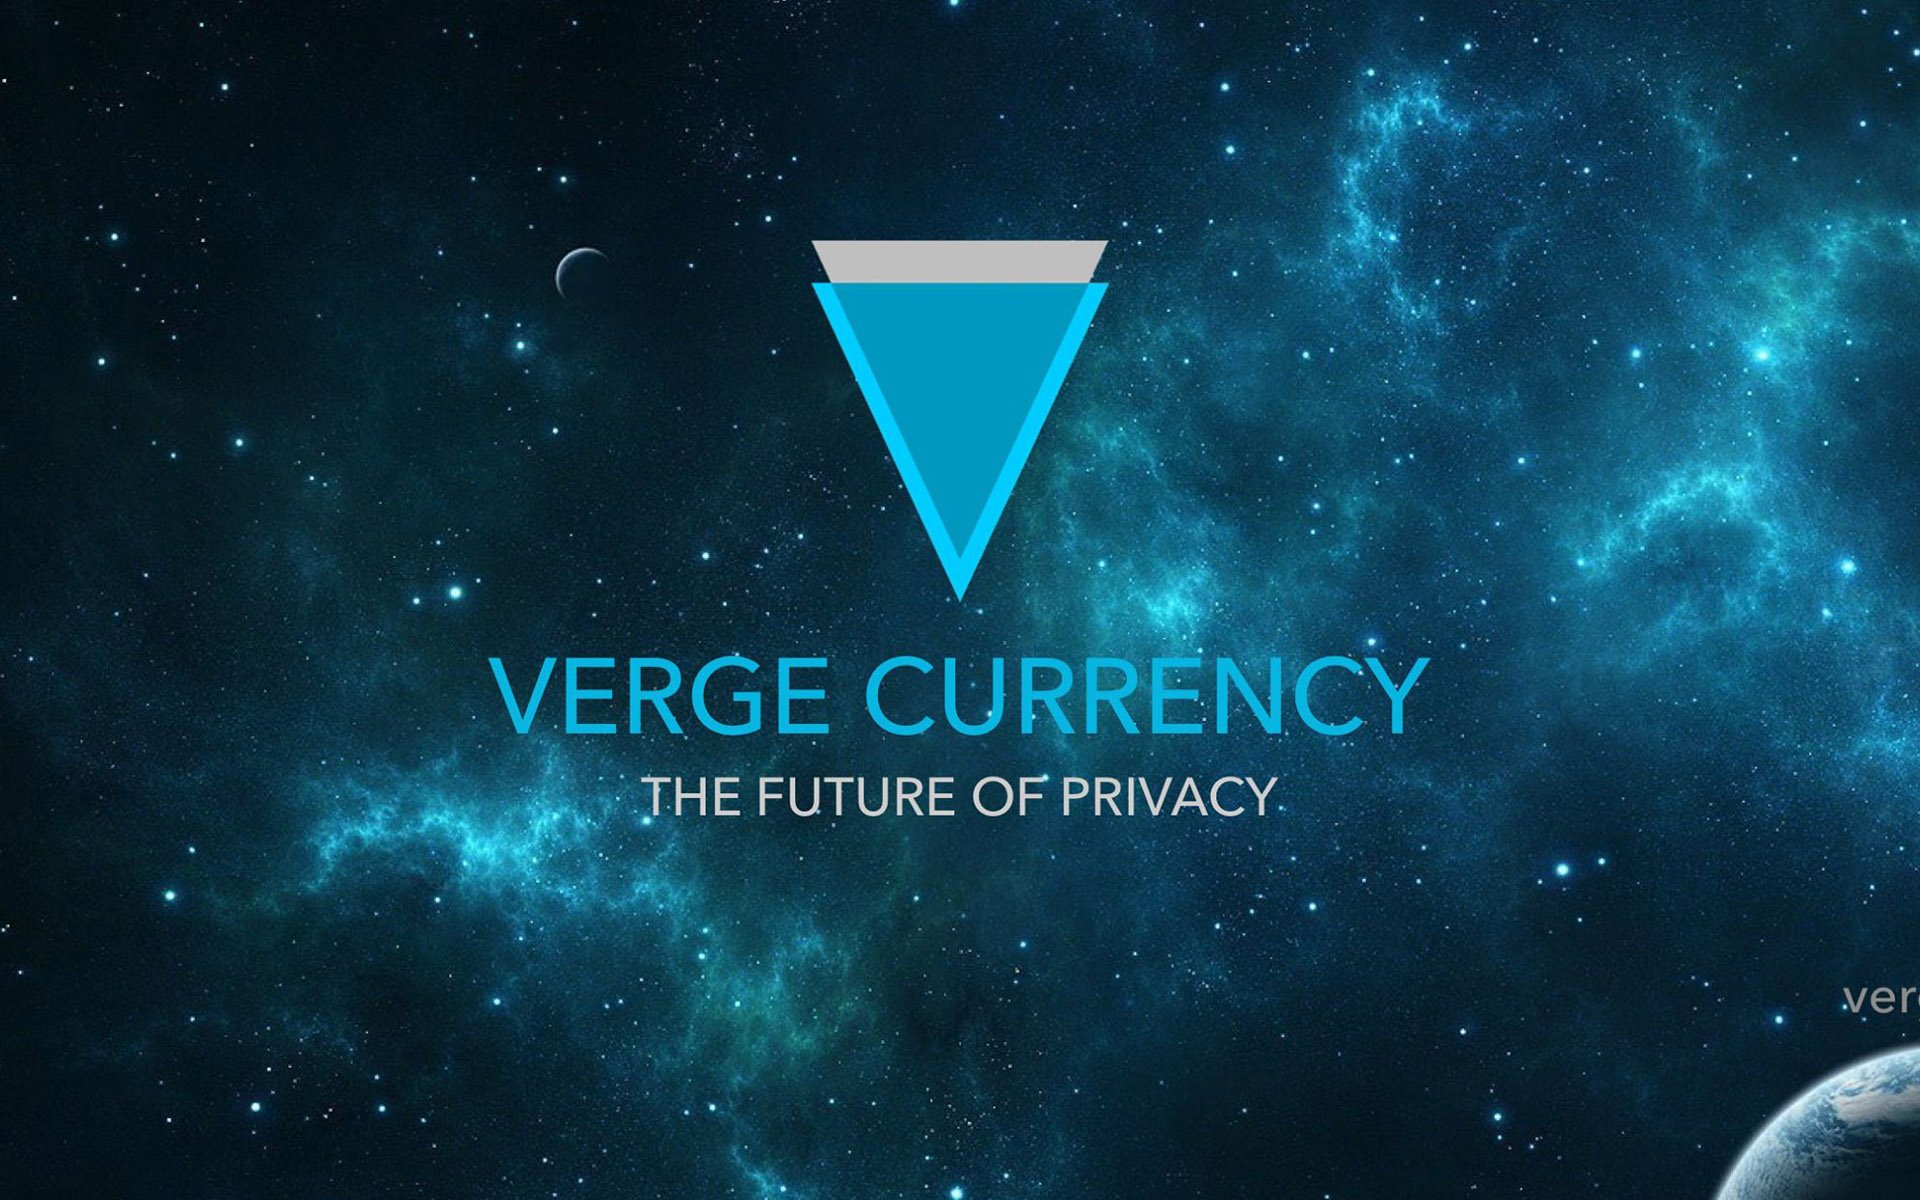 Verge Partnership